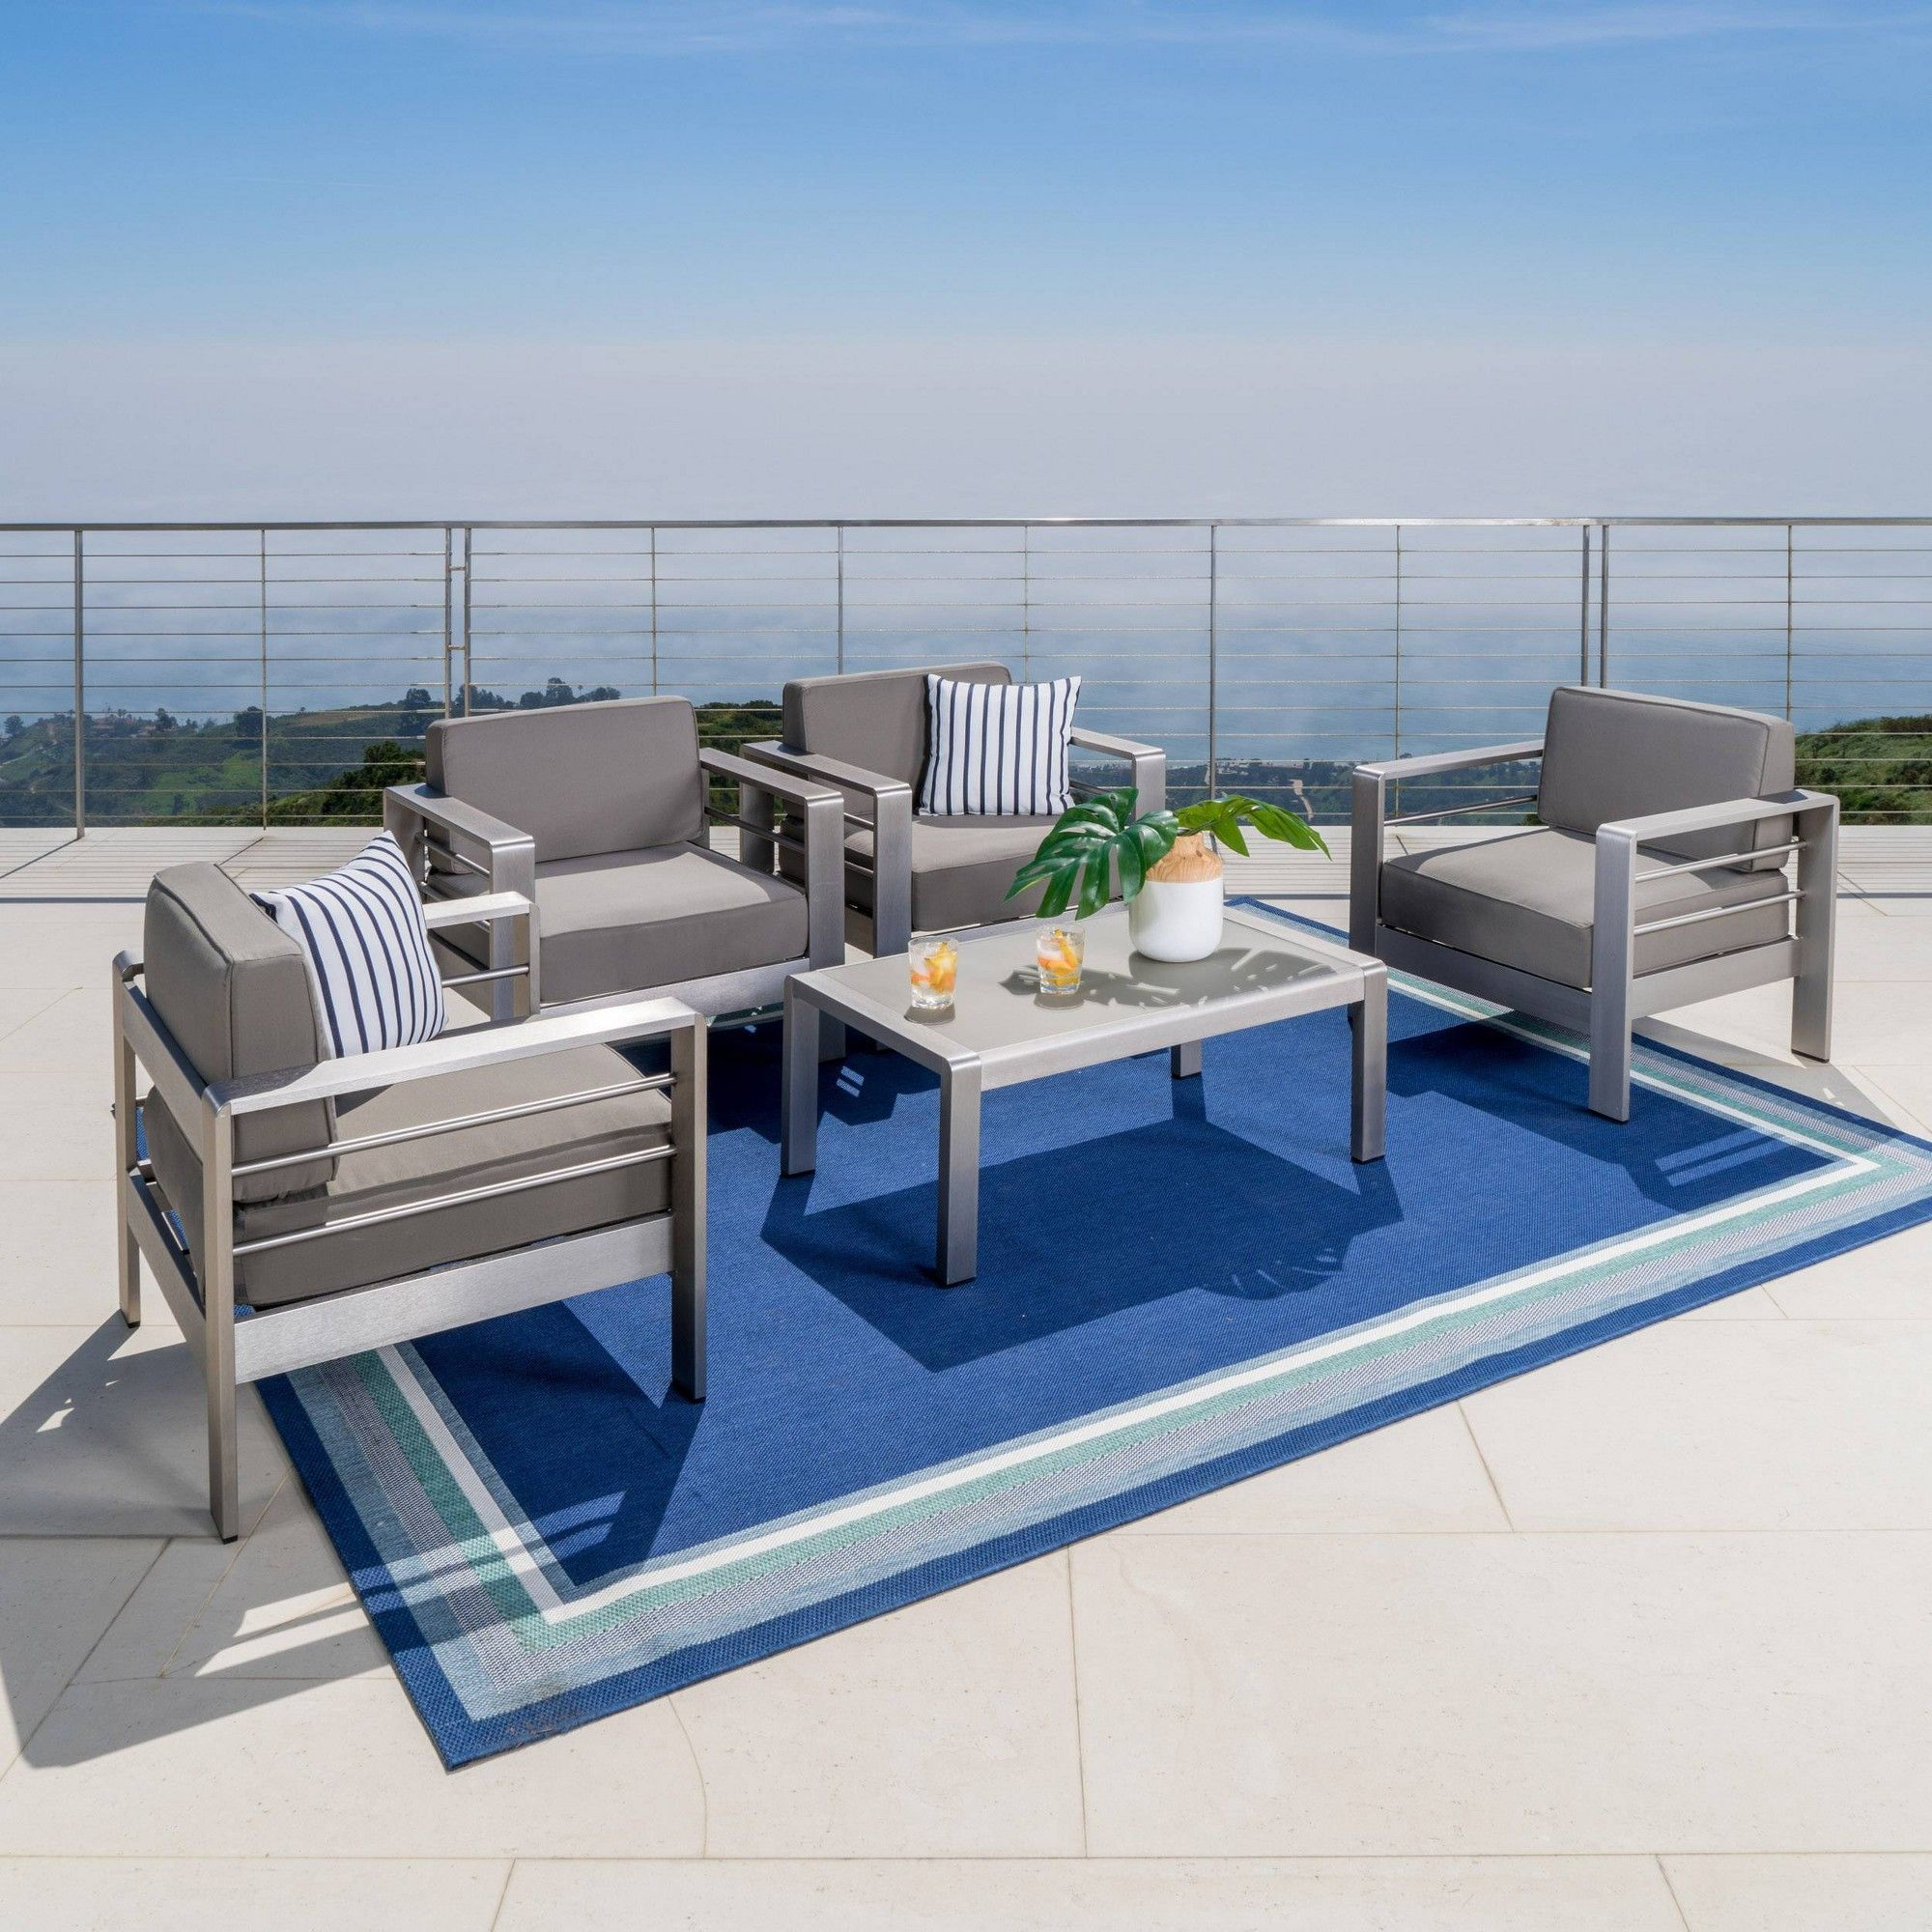 Cape Coral 5pc Aluminum Seating Set Khaki Christopher Knight Home Patio Furniture Sets Outdoor Furniture Sets Furniture Sets